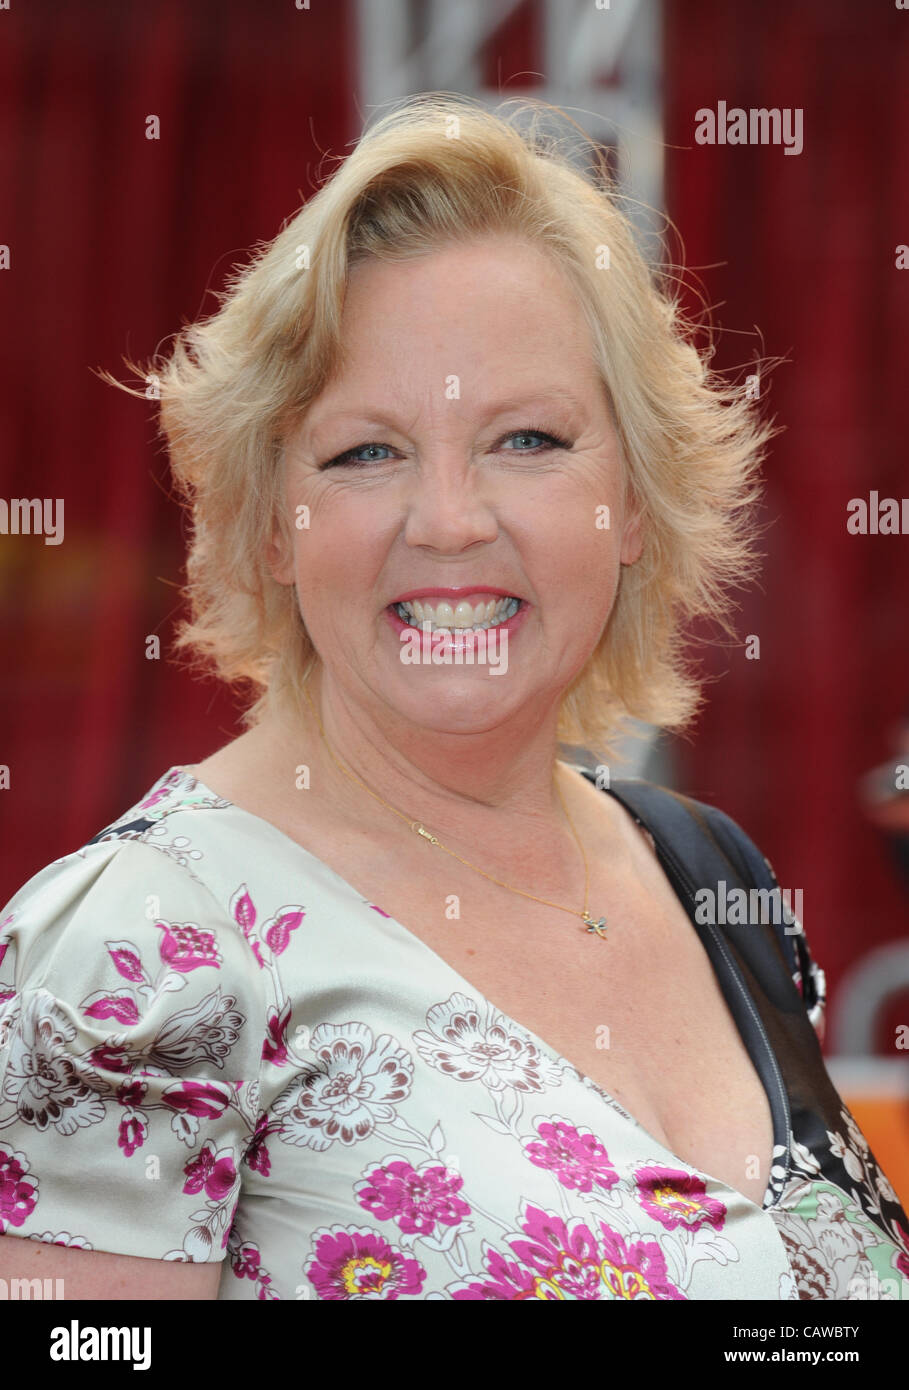 DEBORAH MEADEN THE AFRICAN CATS FILM PREMIERE BFI SOUTHBANK LONDON ENGLAND 25 April 2012 - Stock Image